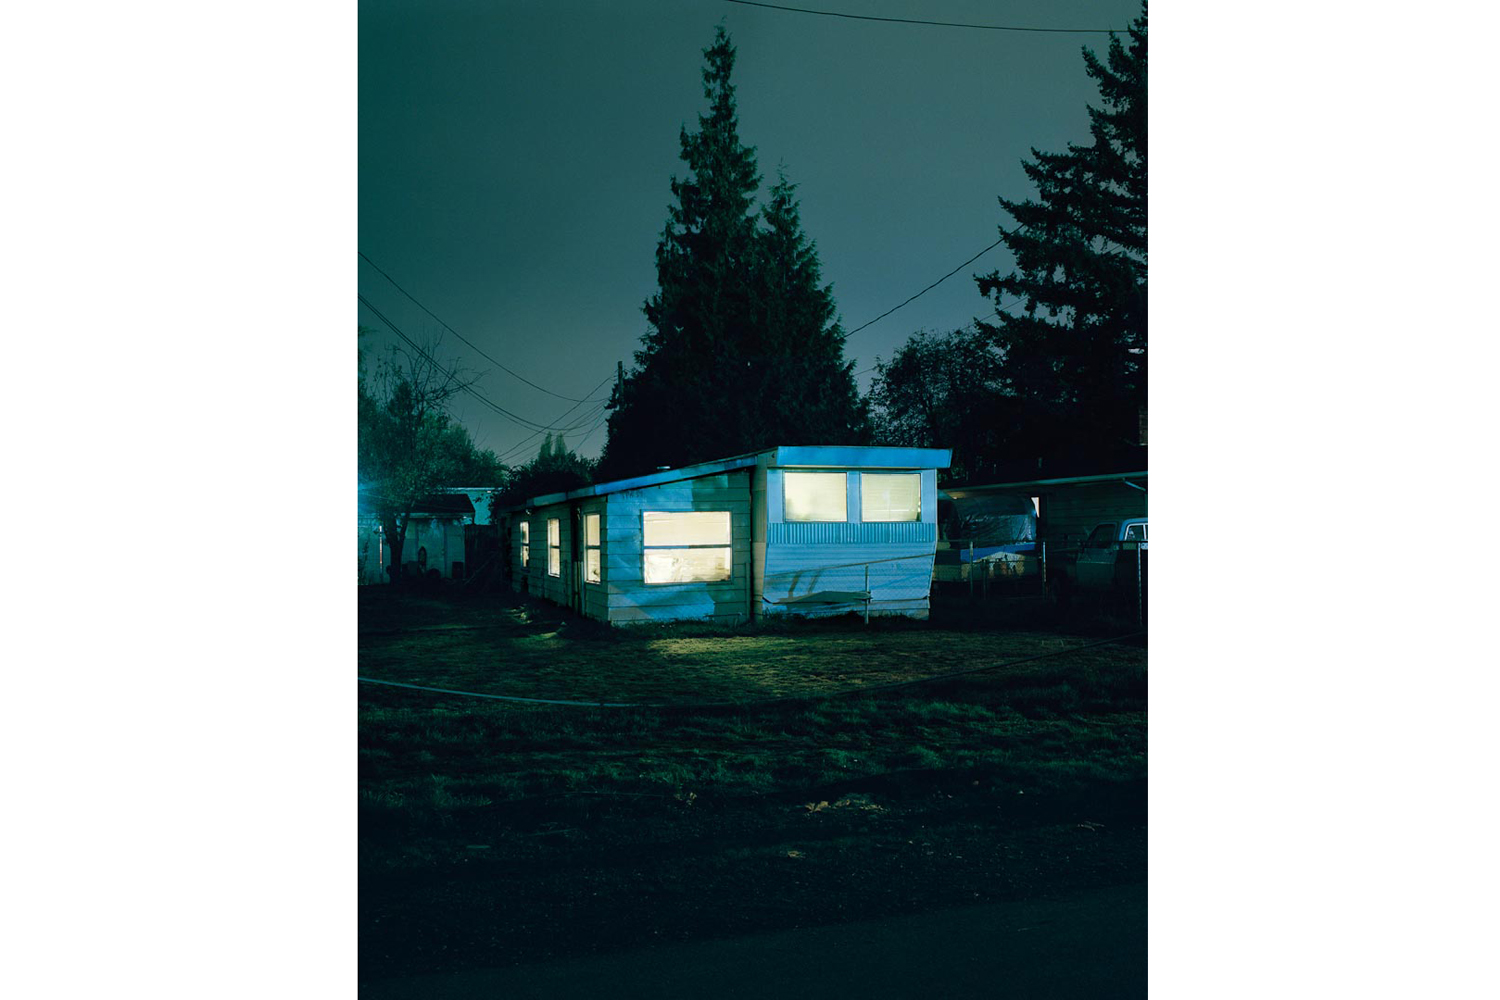 Pictured: From the series Excerpts from Silver Meadows #2810                               Date: 1996-2013                                I became aware of Todd's work through his first book House Hunting (Nazraeli Press, 2001). The photographs depict lower middle class homes and small town motels mostly shot at night. There are lights shining from within, and the occassional solitary street light illuminates a dirty pile of snow, a broken down car, a fenced in yard. As viewers, we're neither too close nor too far from the apparent subject. There are no humans depicted in House Hunting.  Over subsequent volumes (Hido has published roughly 6 monographs), portraits of people, mostly women, crept into the work. Excerpts from Silver Meadows is a full-blown masterpiece of  photographic noir, rife with suggestion; place is as much a central character as the women who make appearances and then fade in the rear-view mirror. We are in 'the vicinity of narrative' — a fictional narrative, in my view — without being told the story. —Darius Himes, director of Fraenkel Gallery and co-founder of Radius Books